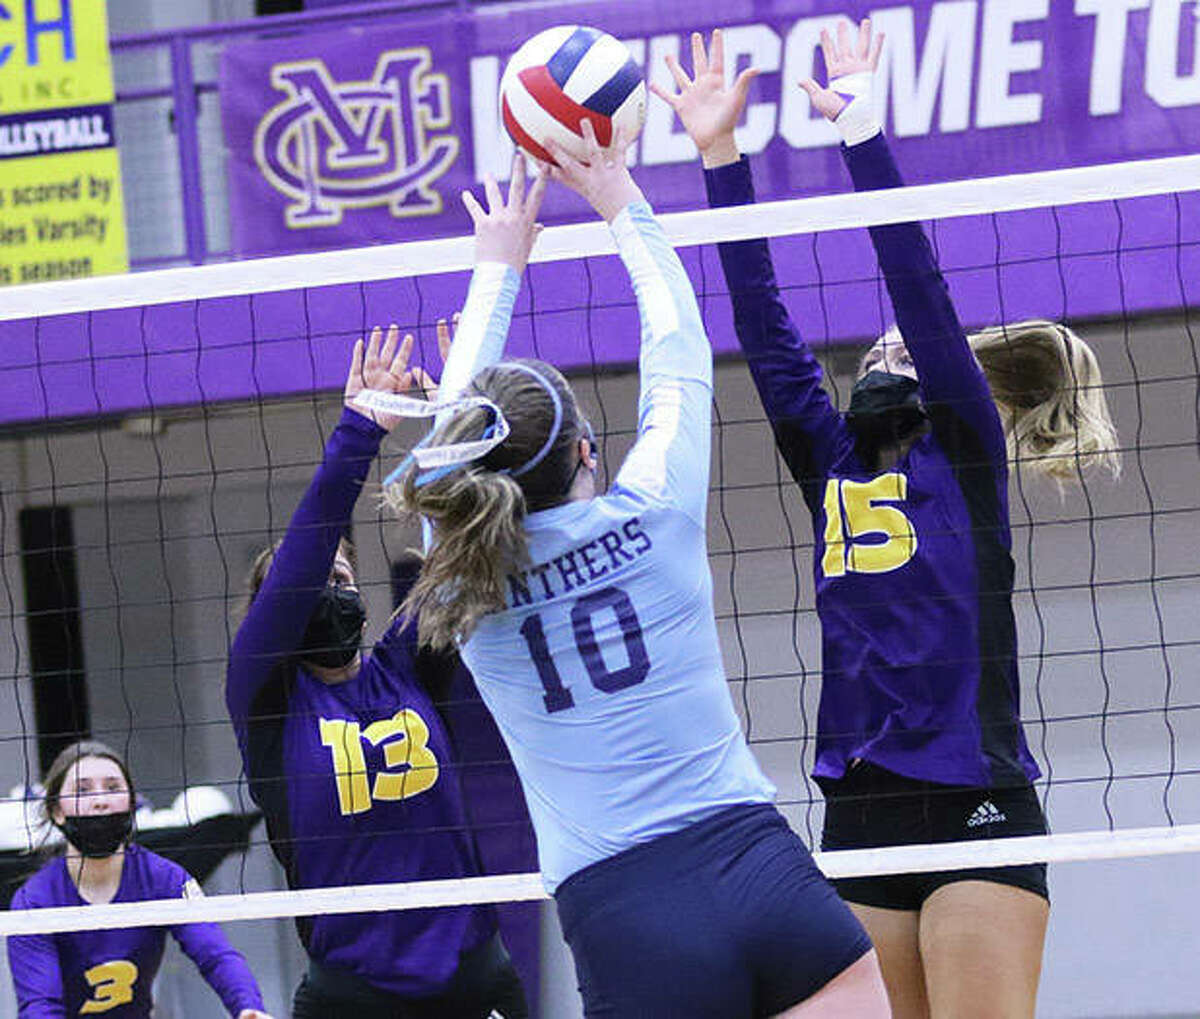 CM's Annabelle Reno (15) puts up a block in front of Jersey's Caroline Gibson (10) while the Eagles' Harper Buhs and Maddie Brueckner (3) watch the play in a March 18 match in Bethalto.